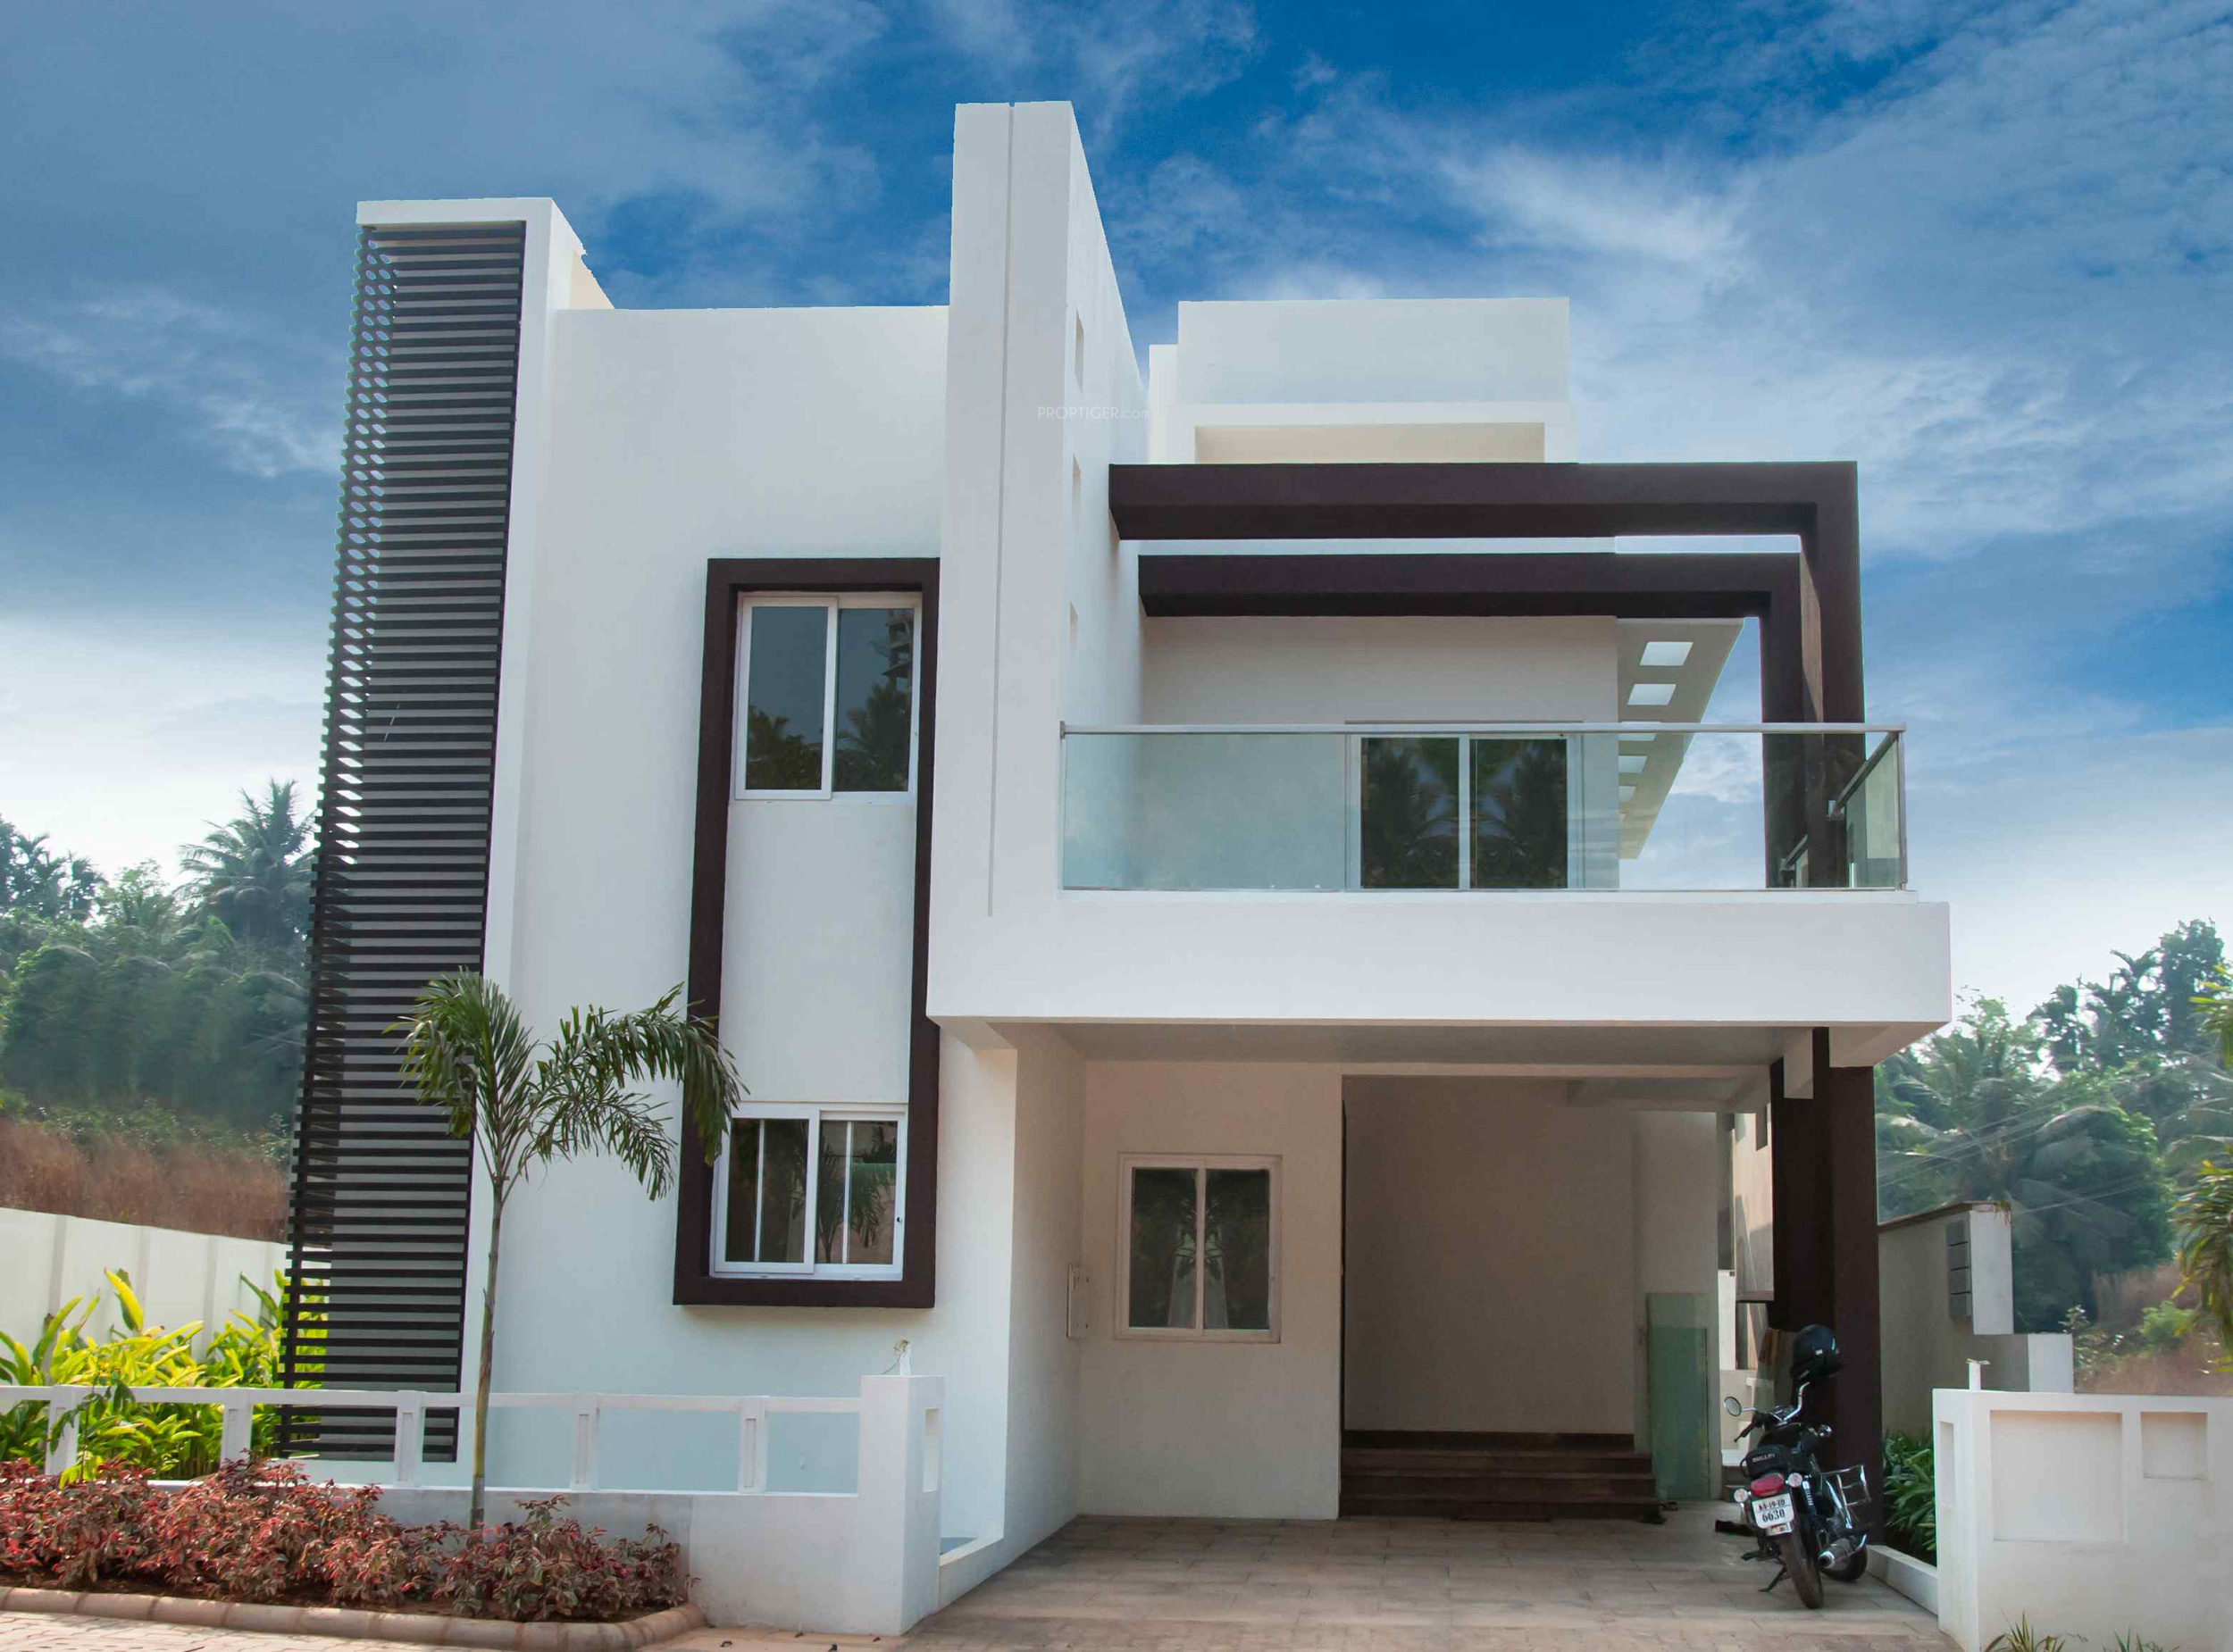 Genial Images For Elevation Of Pooja Gardens Of Delight